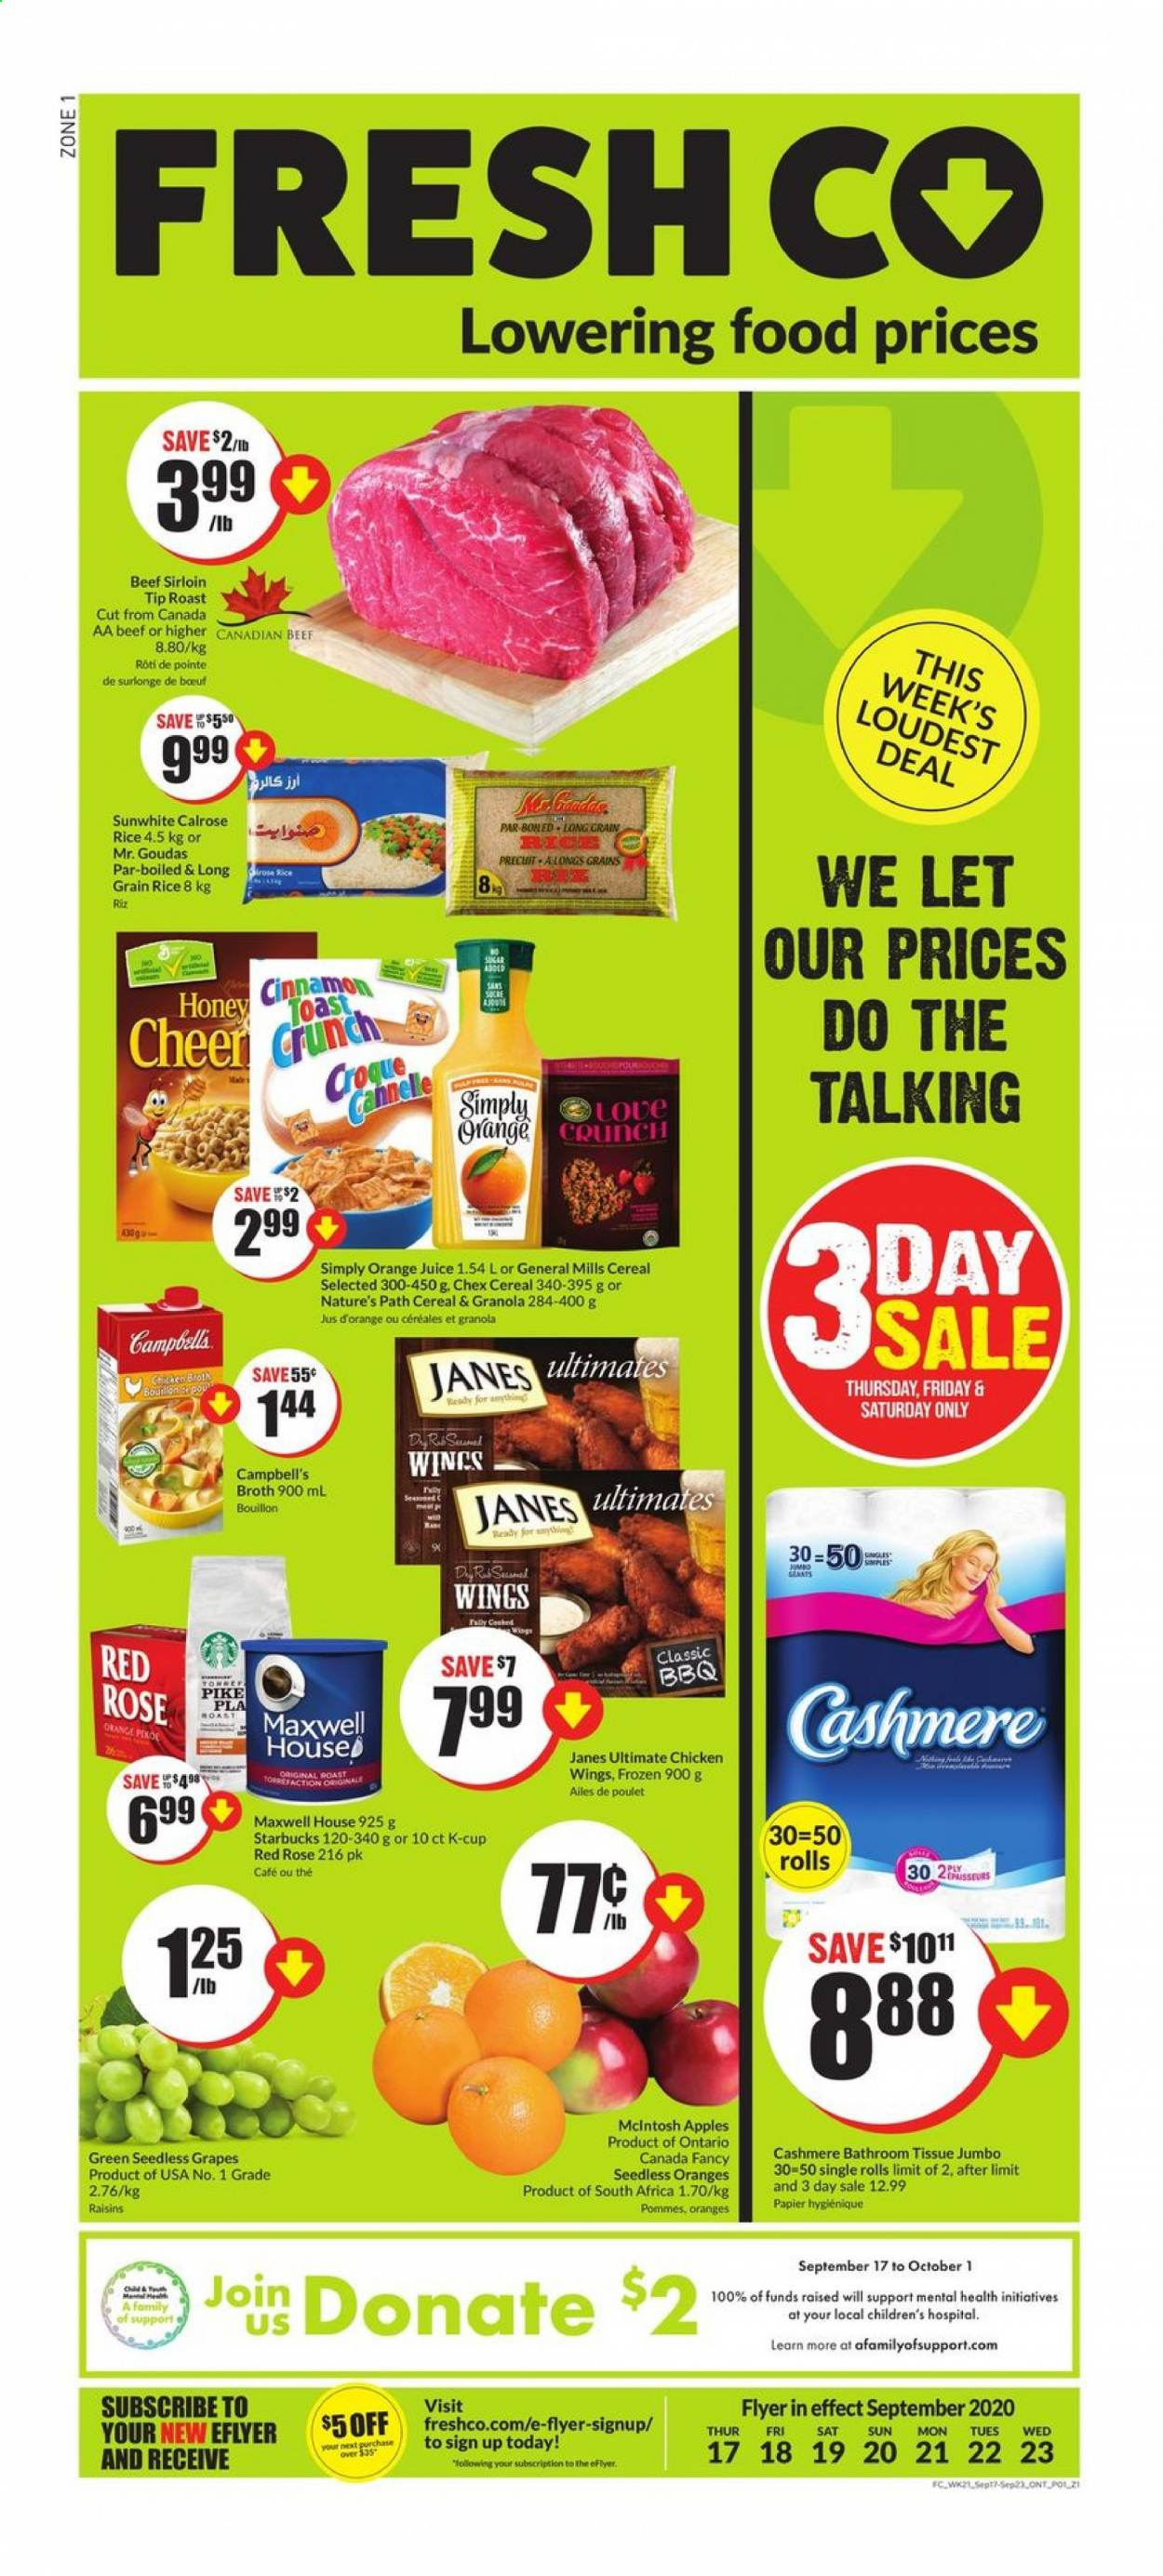 FreshCo. Flyer - September 17, 2020 - September 23, 2020 - Sales products - beef meat, beef sirloin, bouillon, campbell's, cereals, cup, frozen, granola, grapes, maxwell house, mclntosh apples, raisins, rice, seedless grapes, starbucks, honey, pike, chicken, orange juice, oranges, juice, cereal, poulet, pommes, bœuf, jus d'orange, papier, riz, jus, wings, rolls, roast, rosé. Page 1.